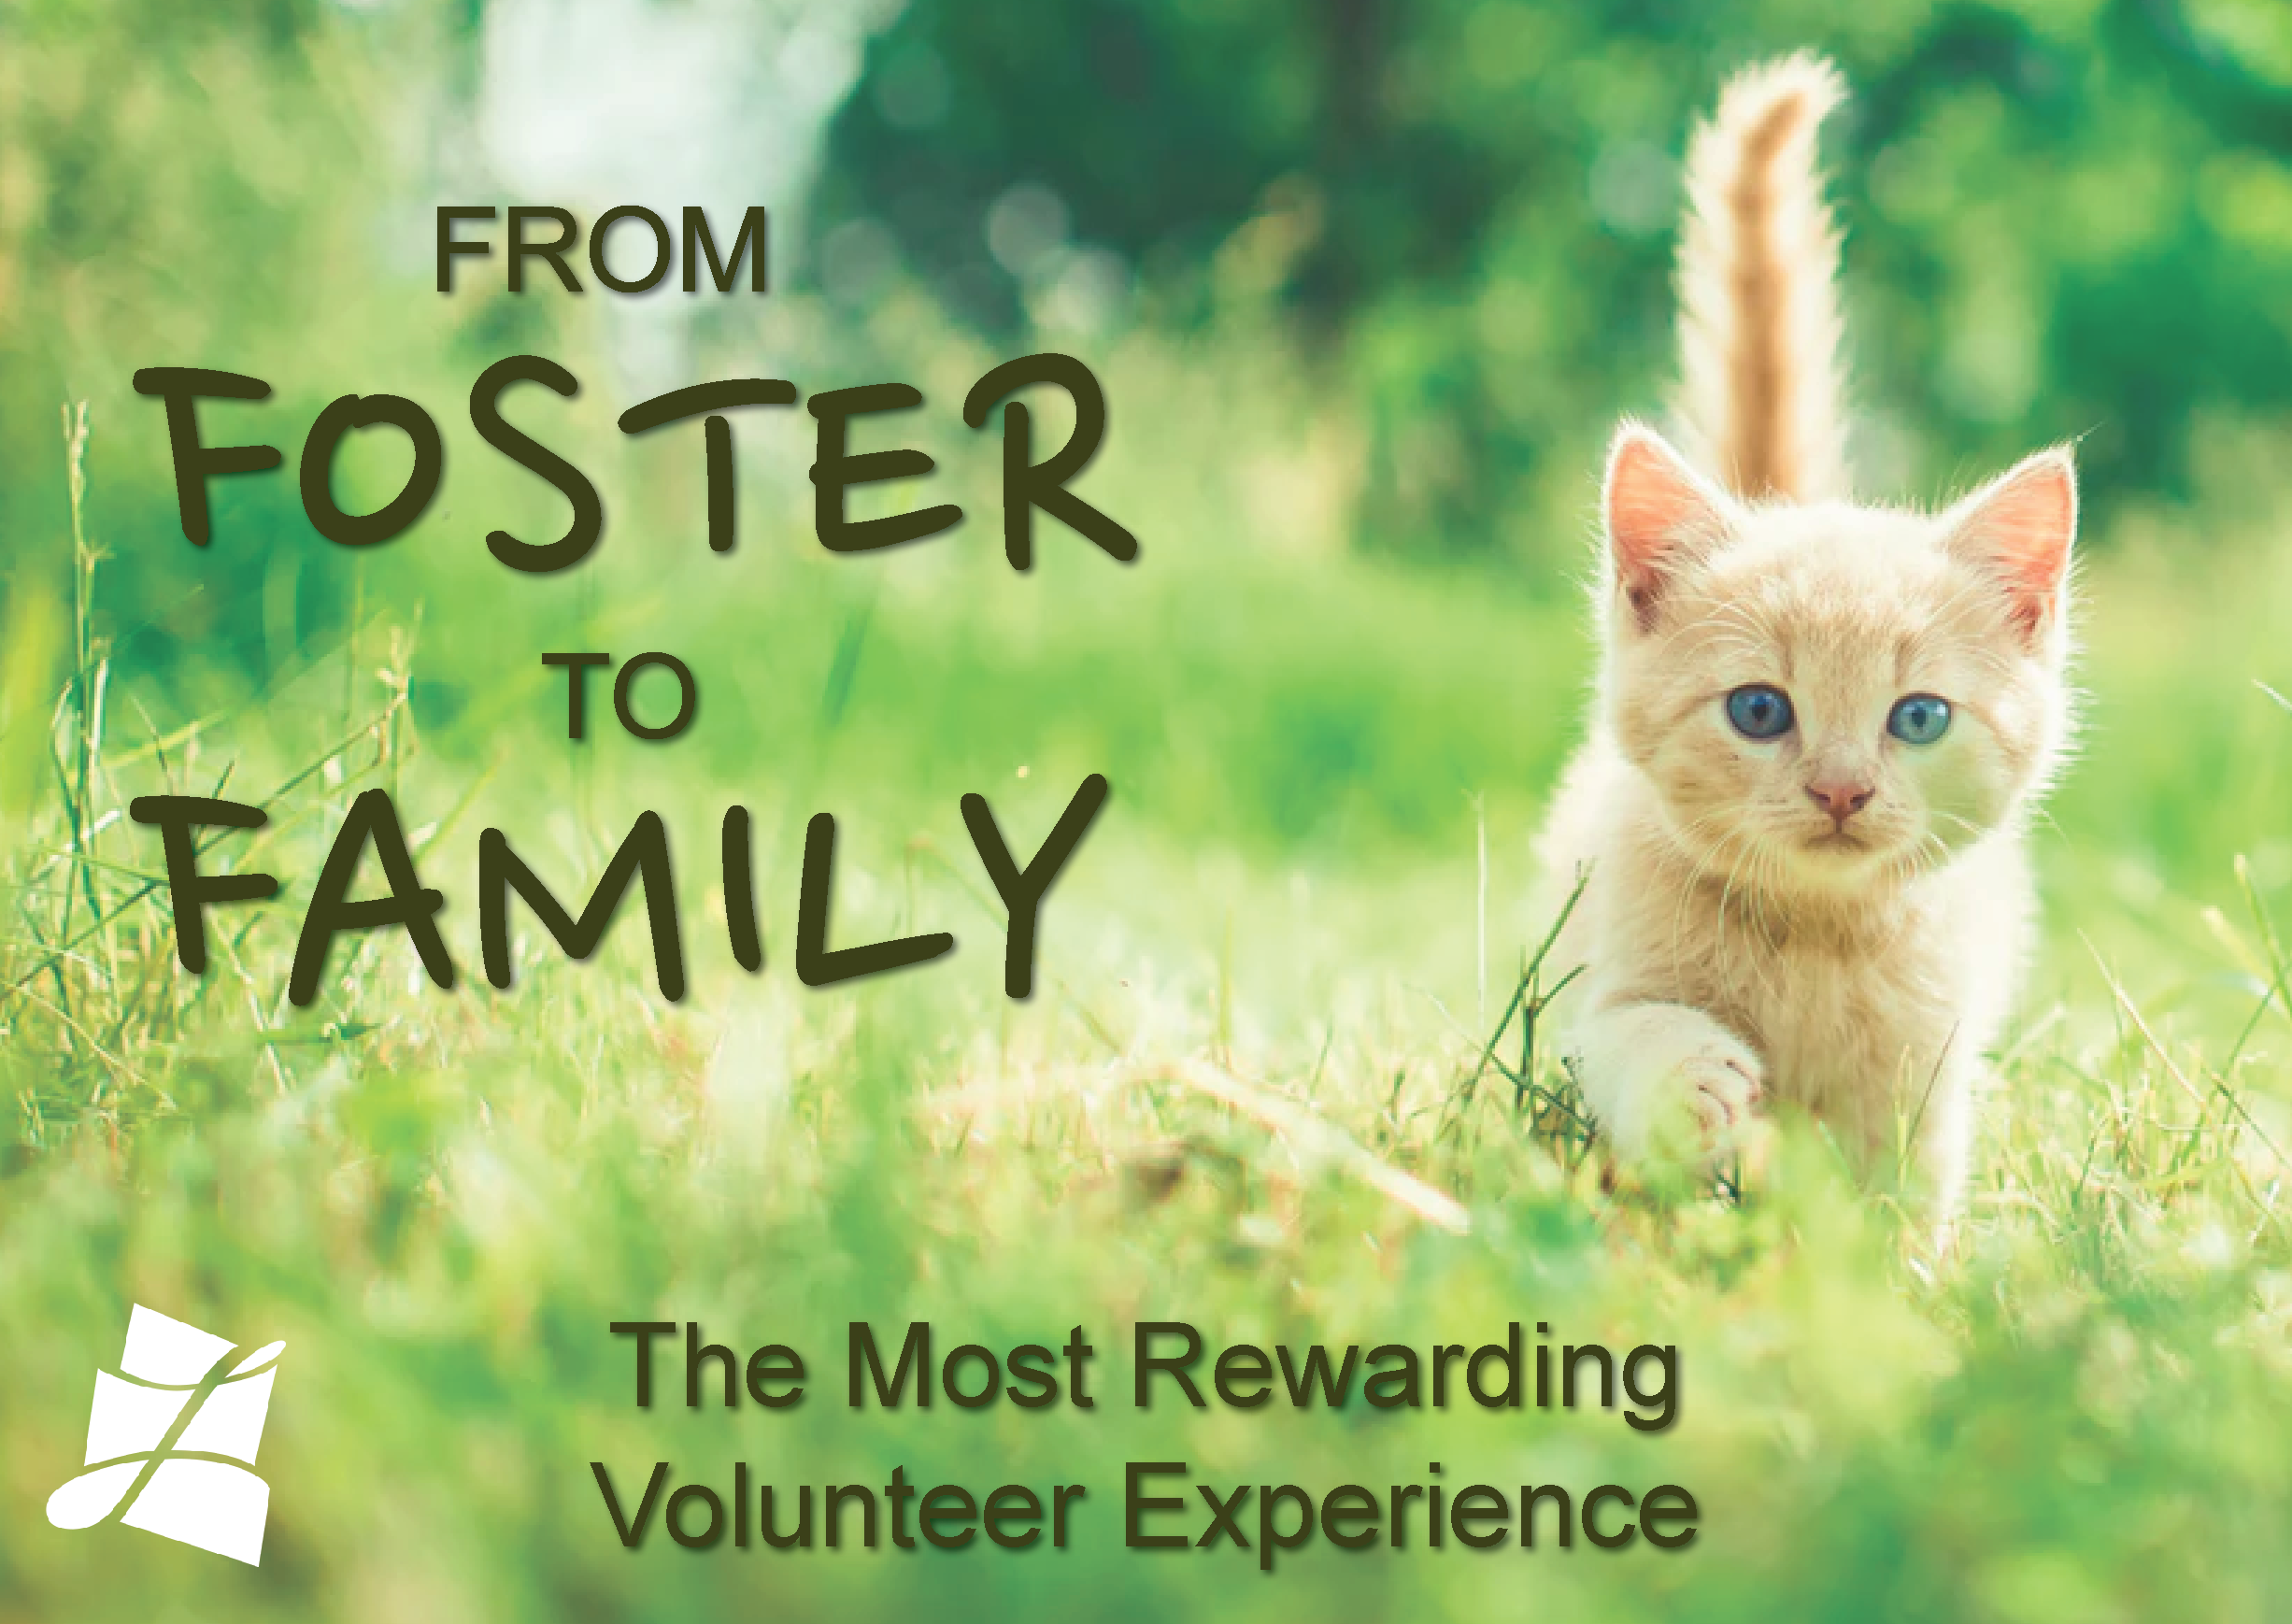 Shelter In Need Of Volunteers To Foster And Adopt